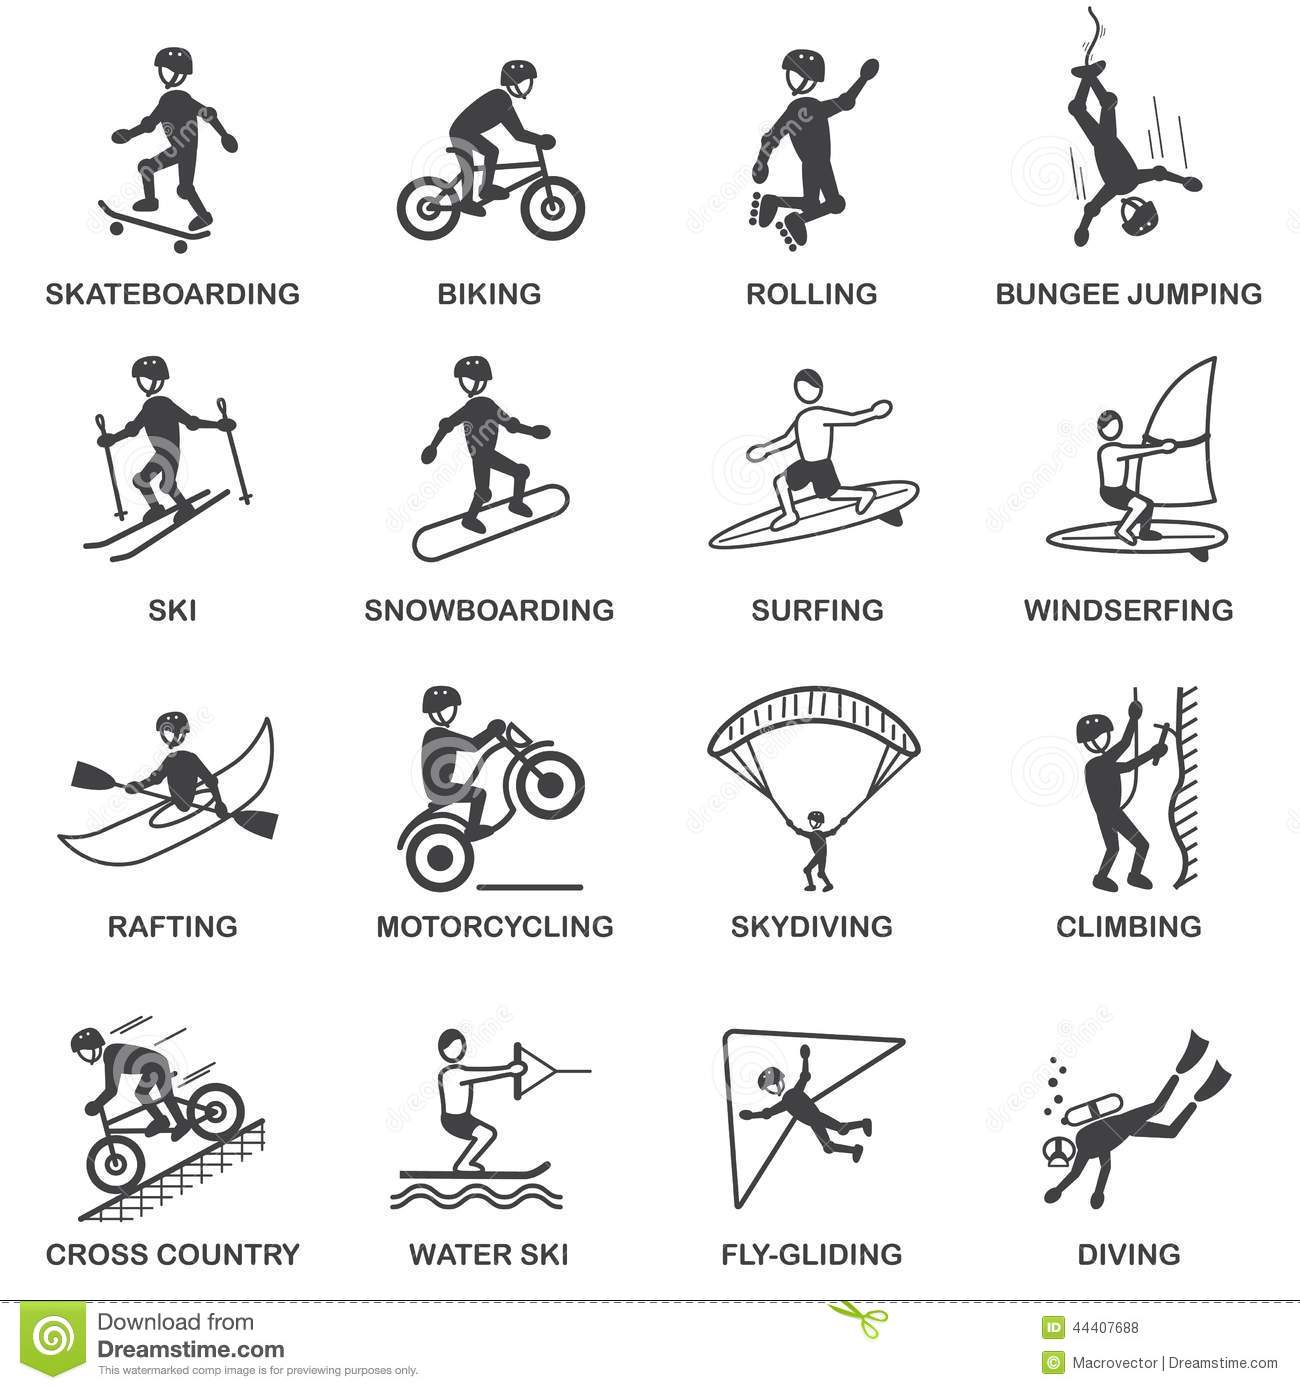 is bungee jumping a sport